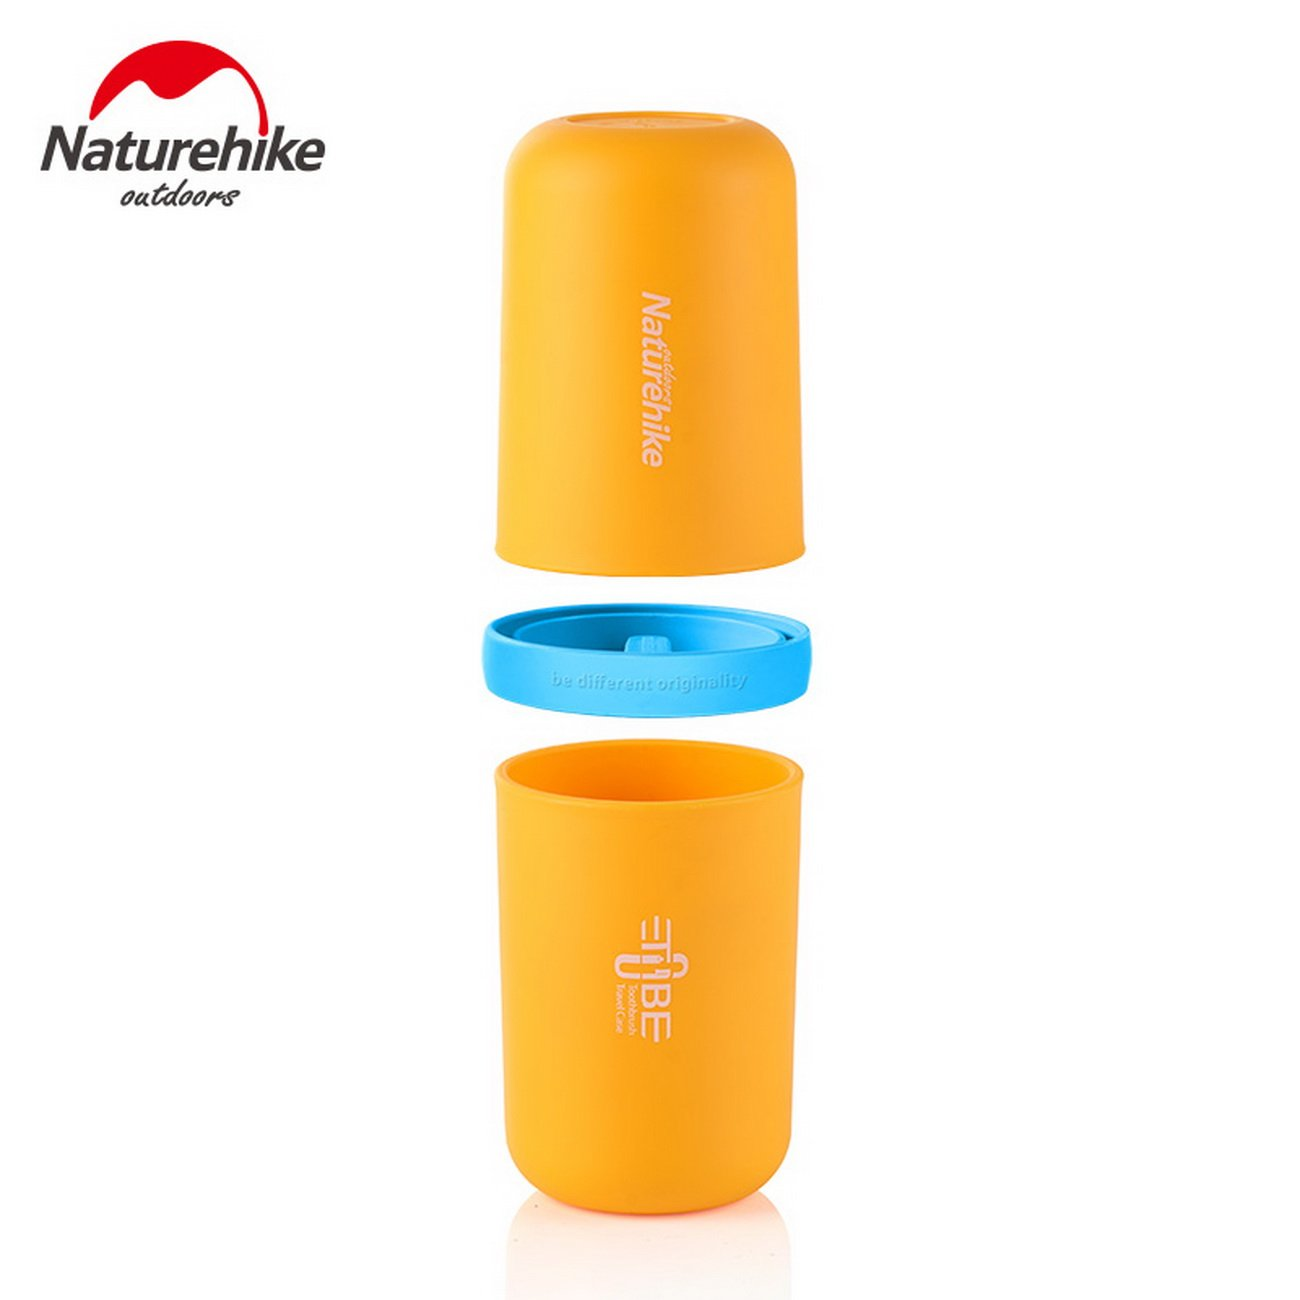 Naturehike water bottle travel wash cup travel multifunction kit tooth cups  NH17X020-B  Amazon.co.uk  Kitchen   Home 802aa623fd15e